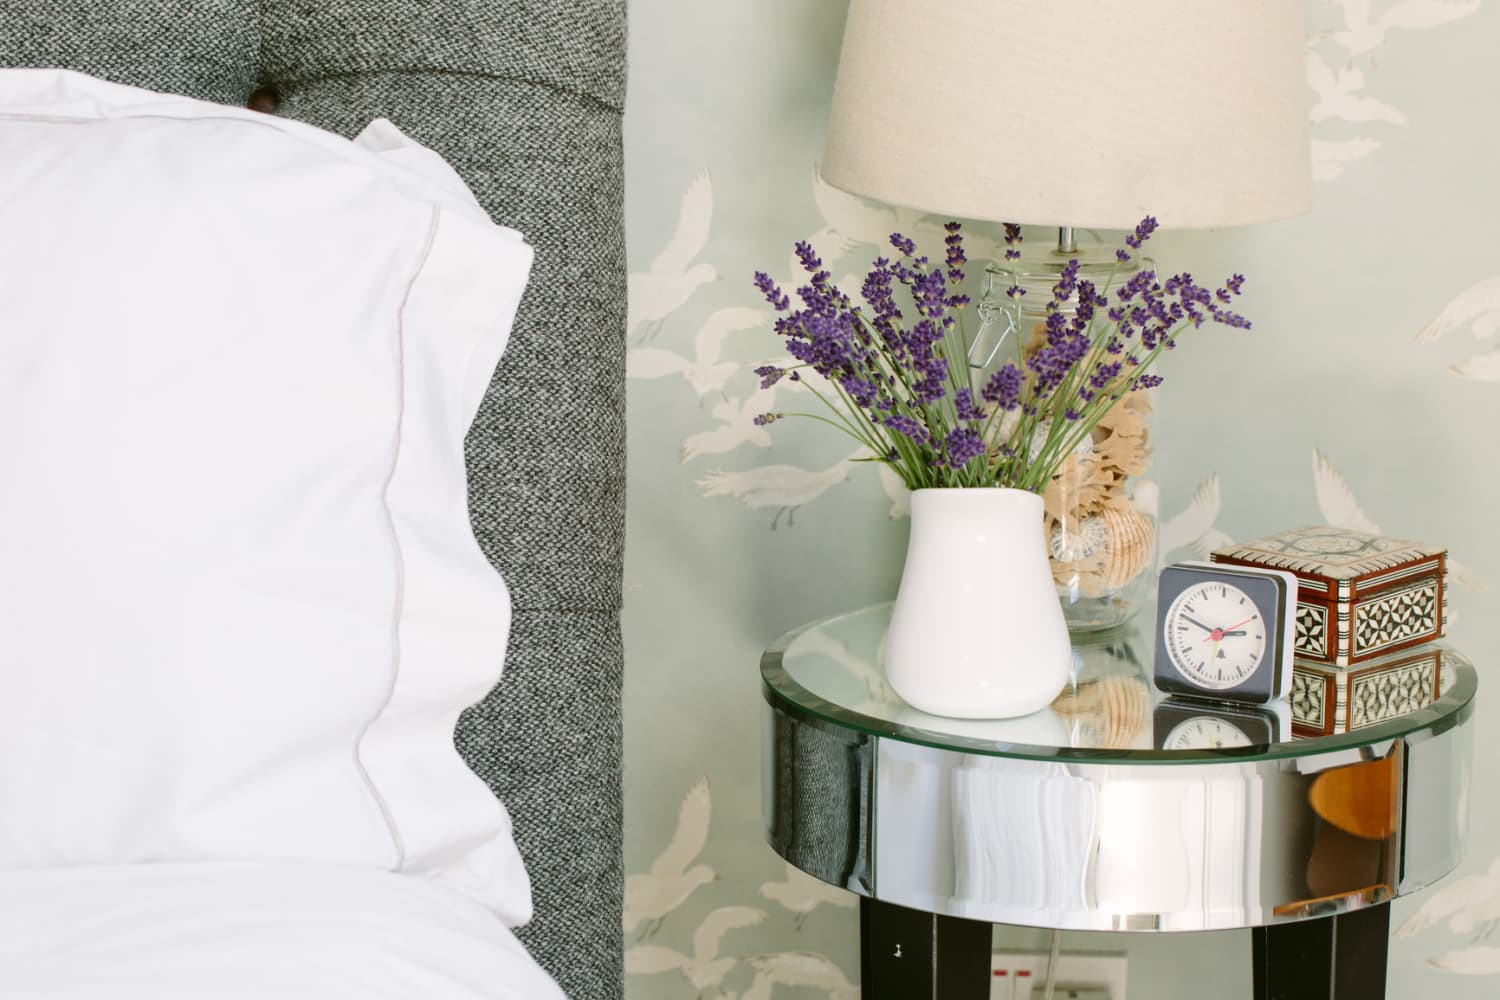 5 Surprising Things Real Estate Agents Say They've Seen Displayed In a Bedroom